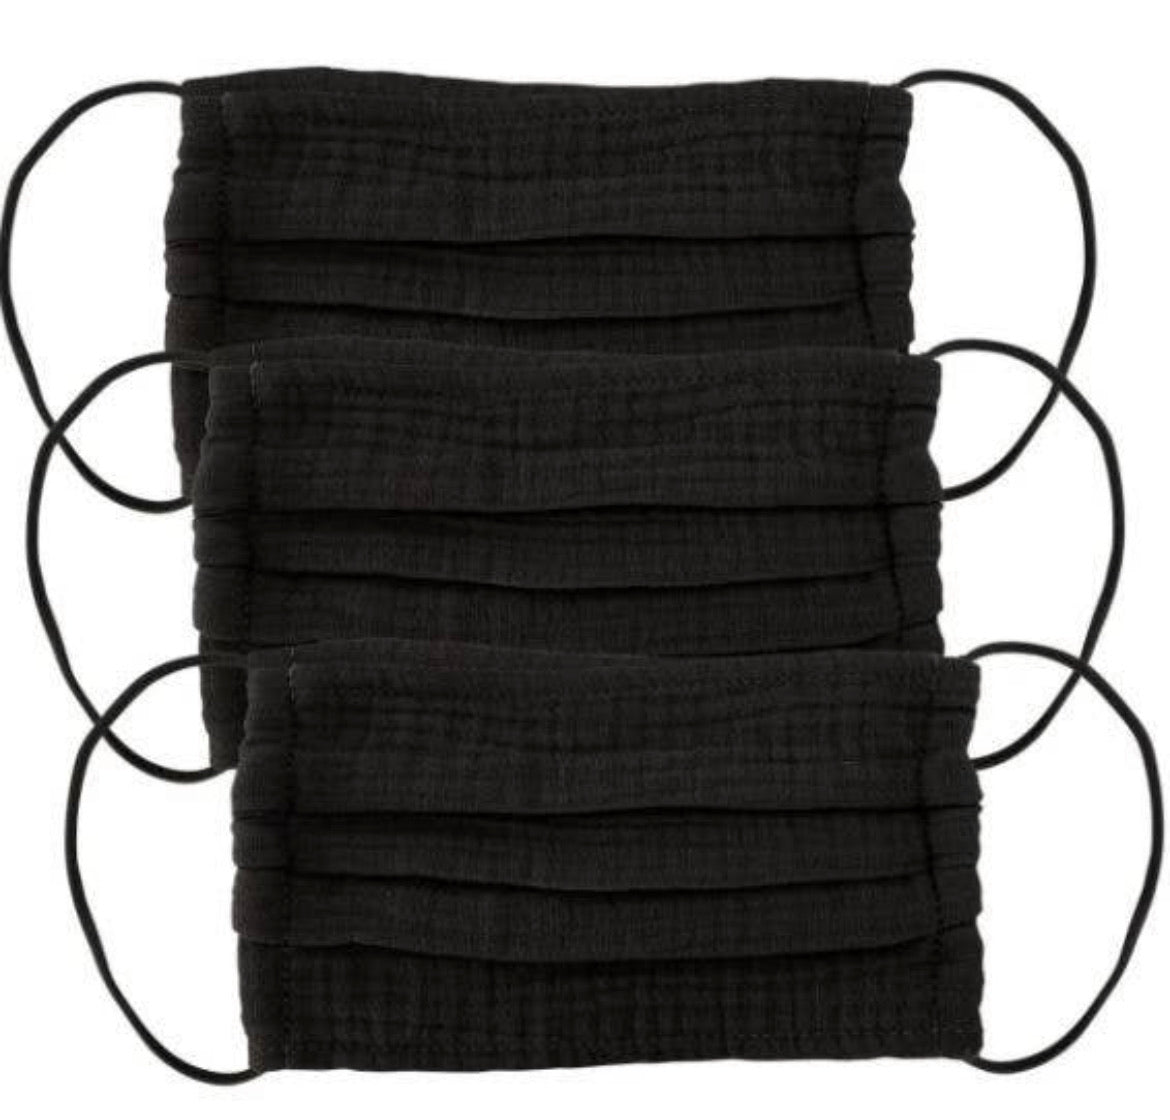 Cotton Mask Set - 3 piece - Black